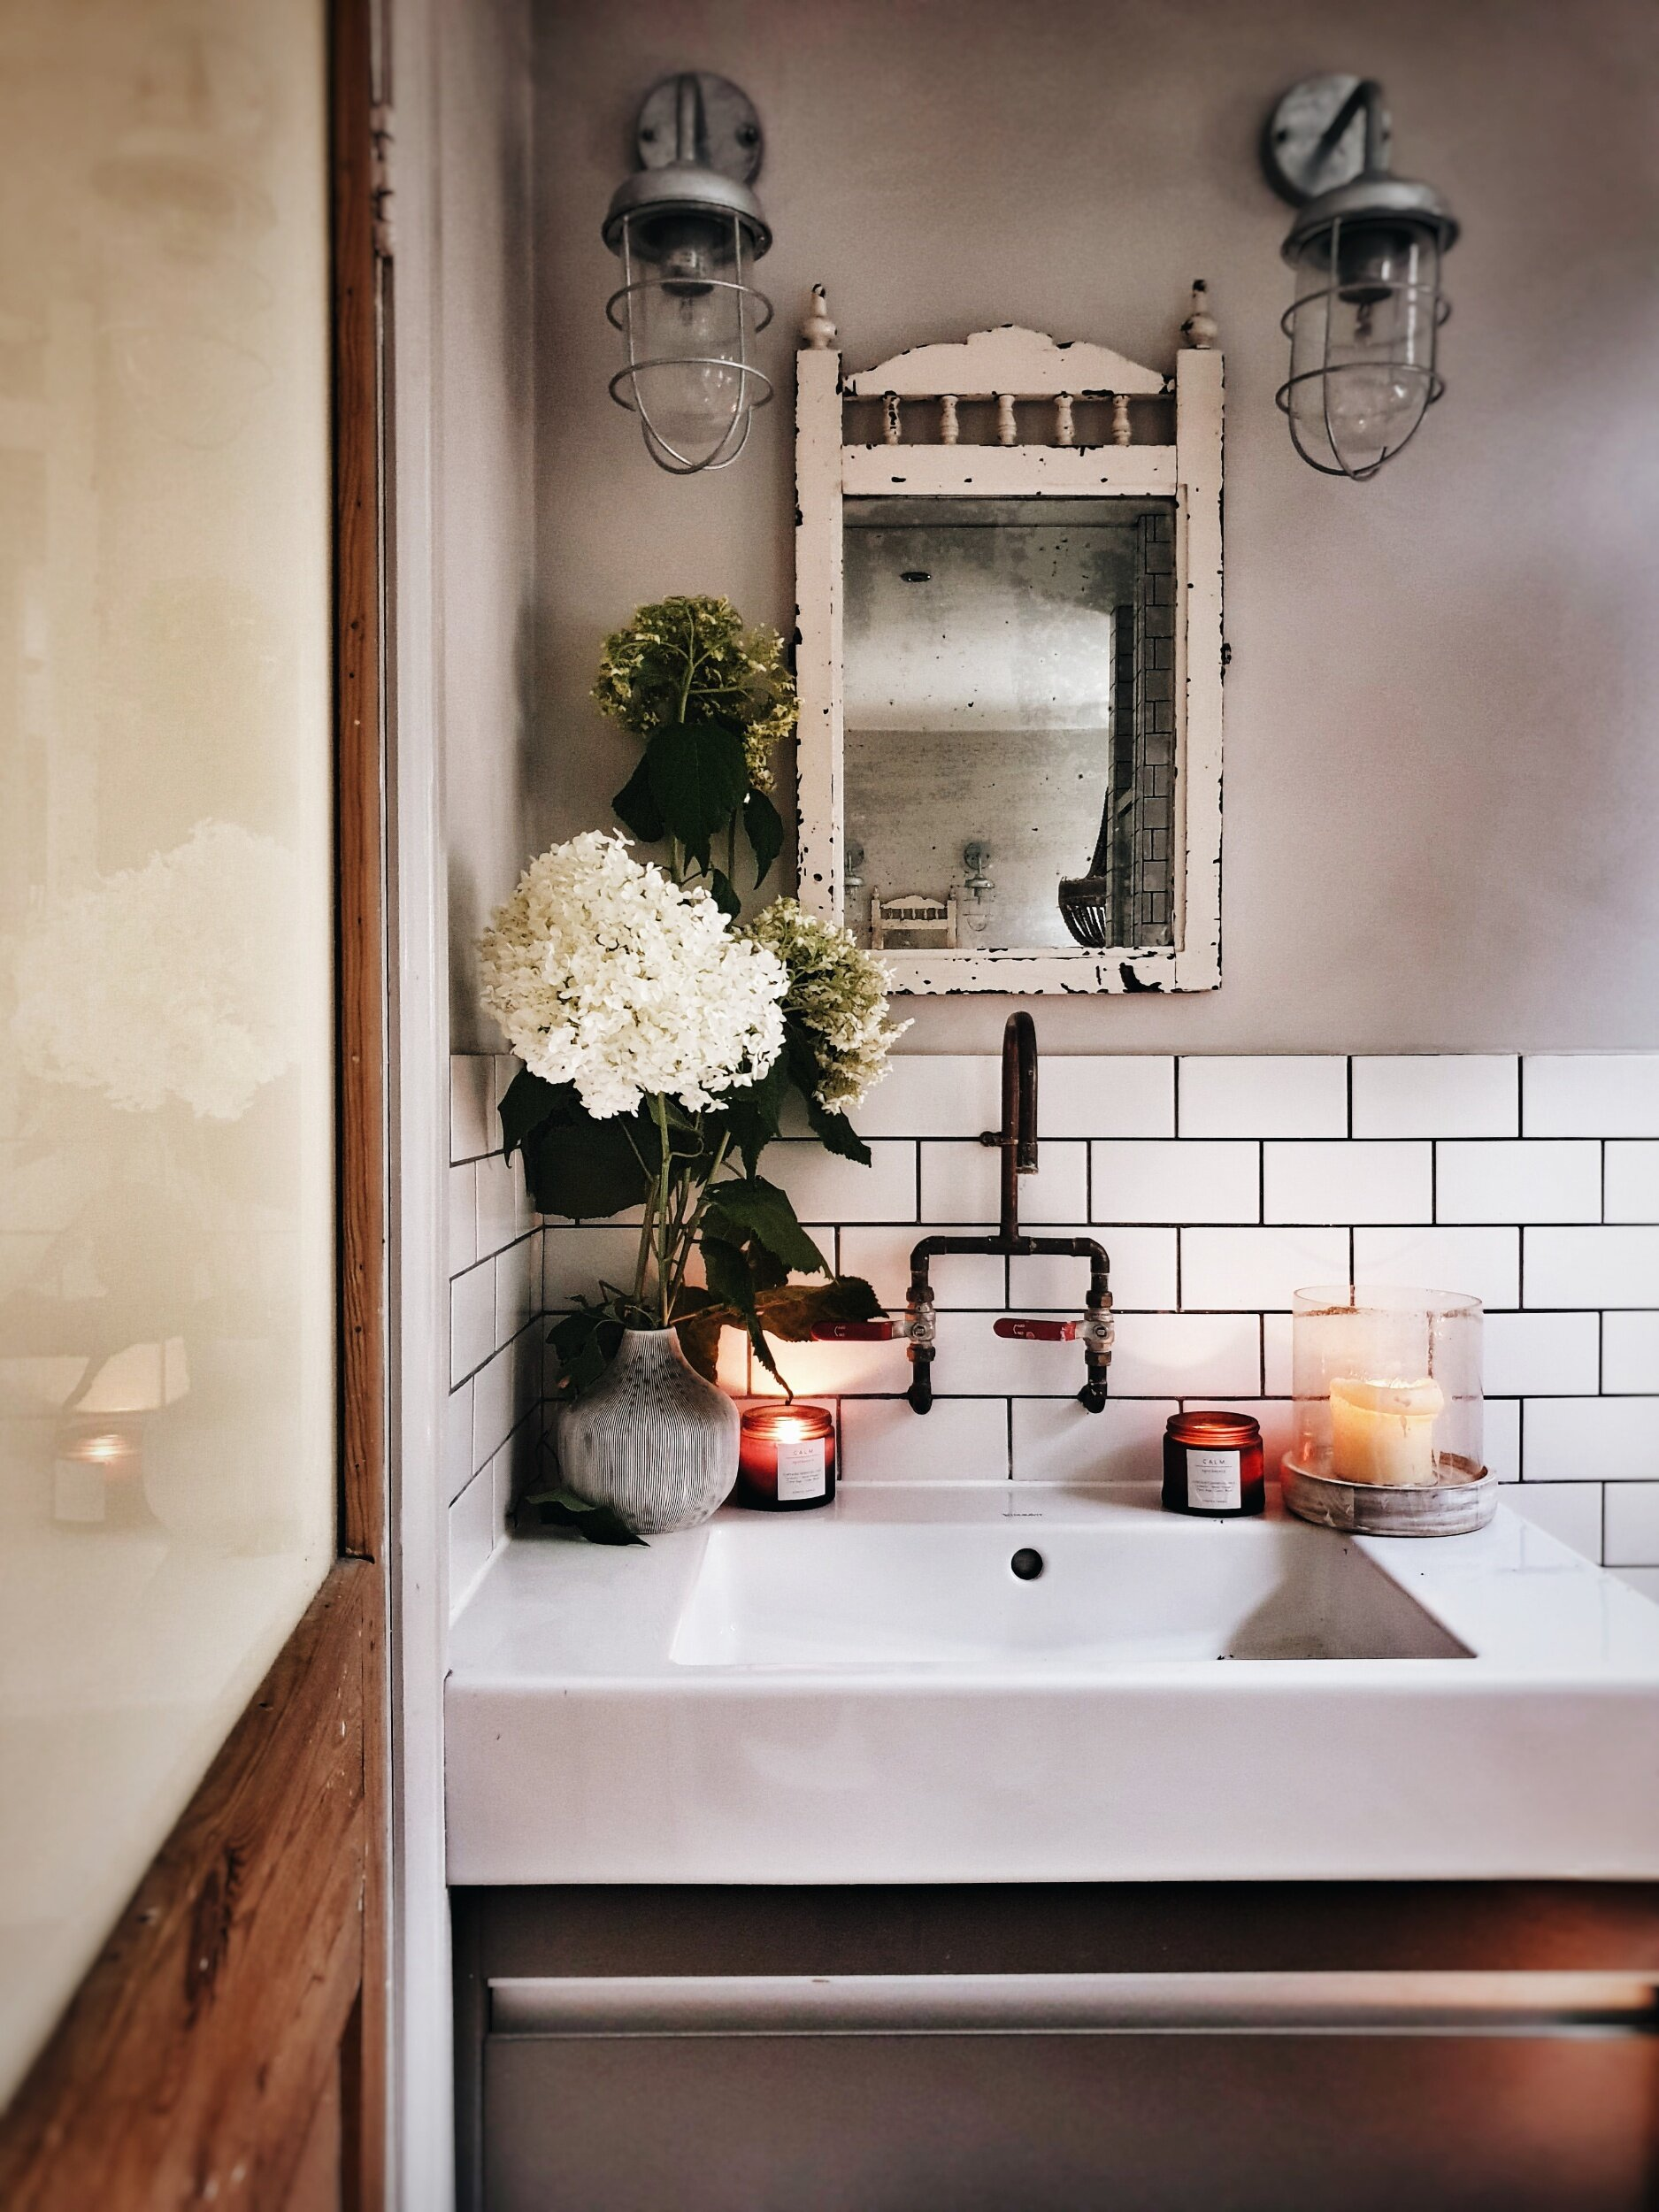 The copper taps made by my builder added an industrial edge to the bathroom that I loved